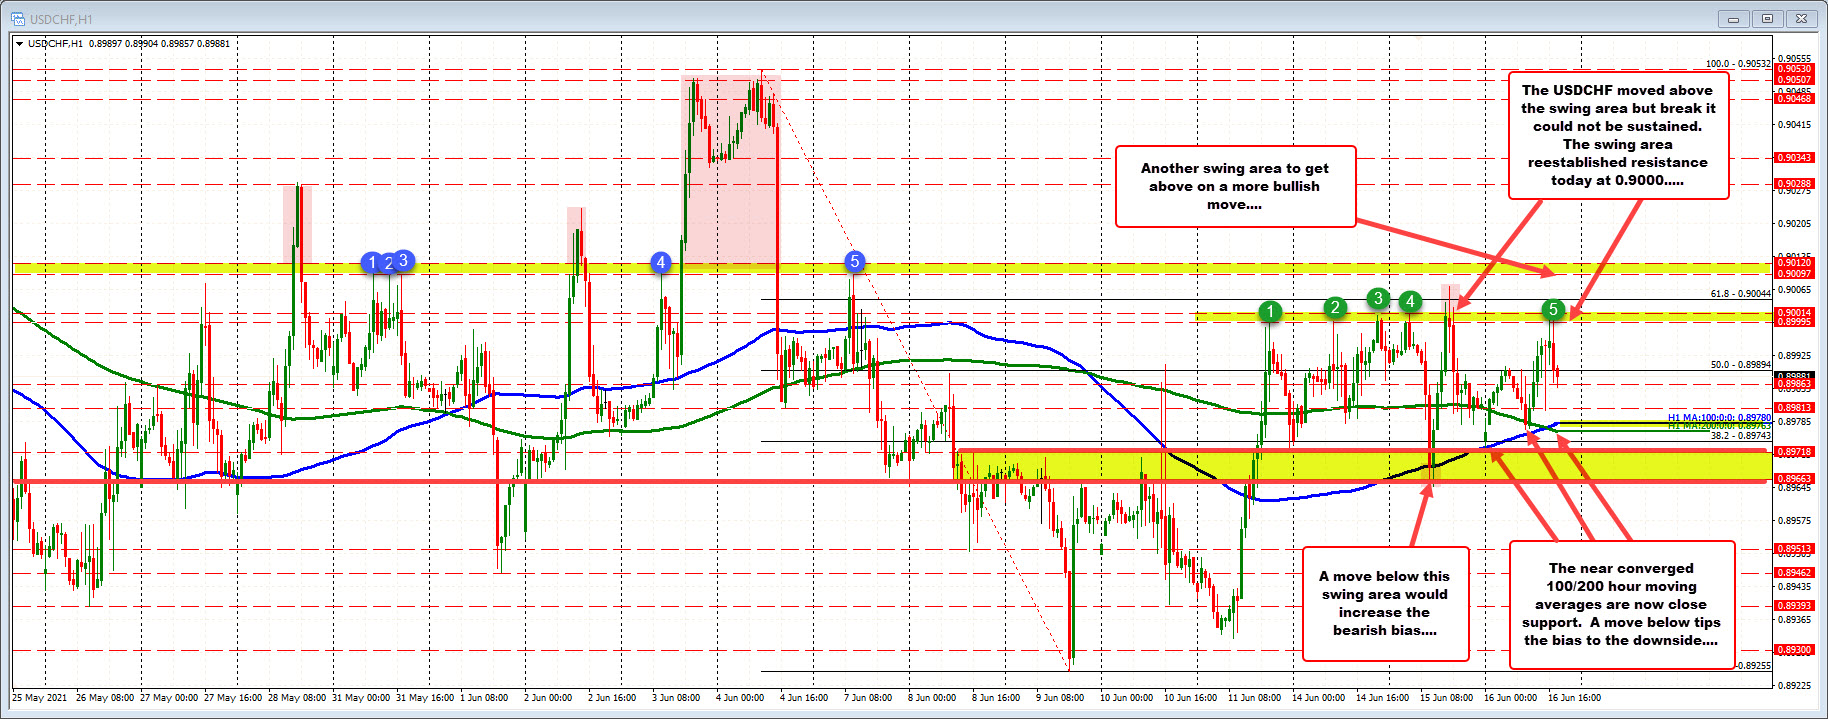 Swing area around 0.9000 above, and MAs below at 0.8076 area